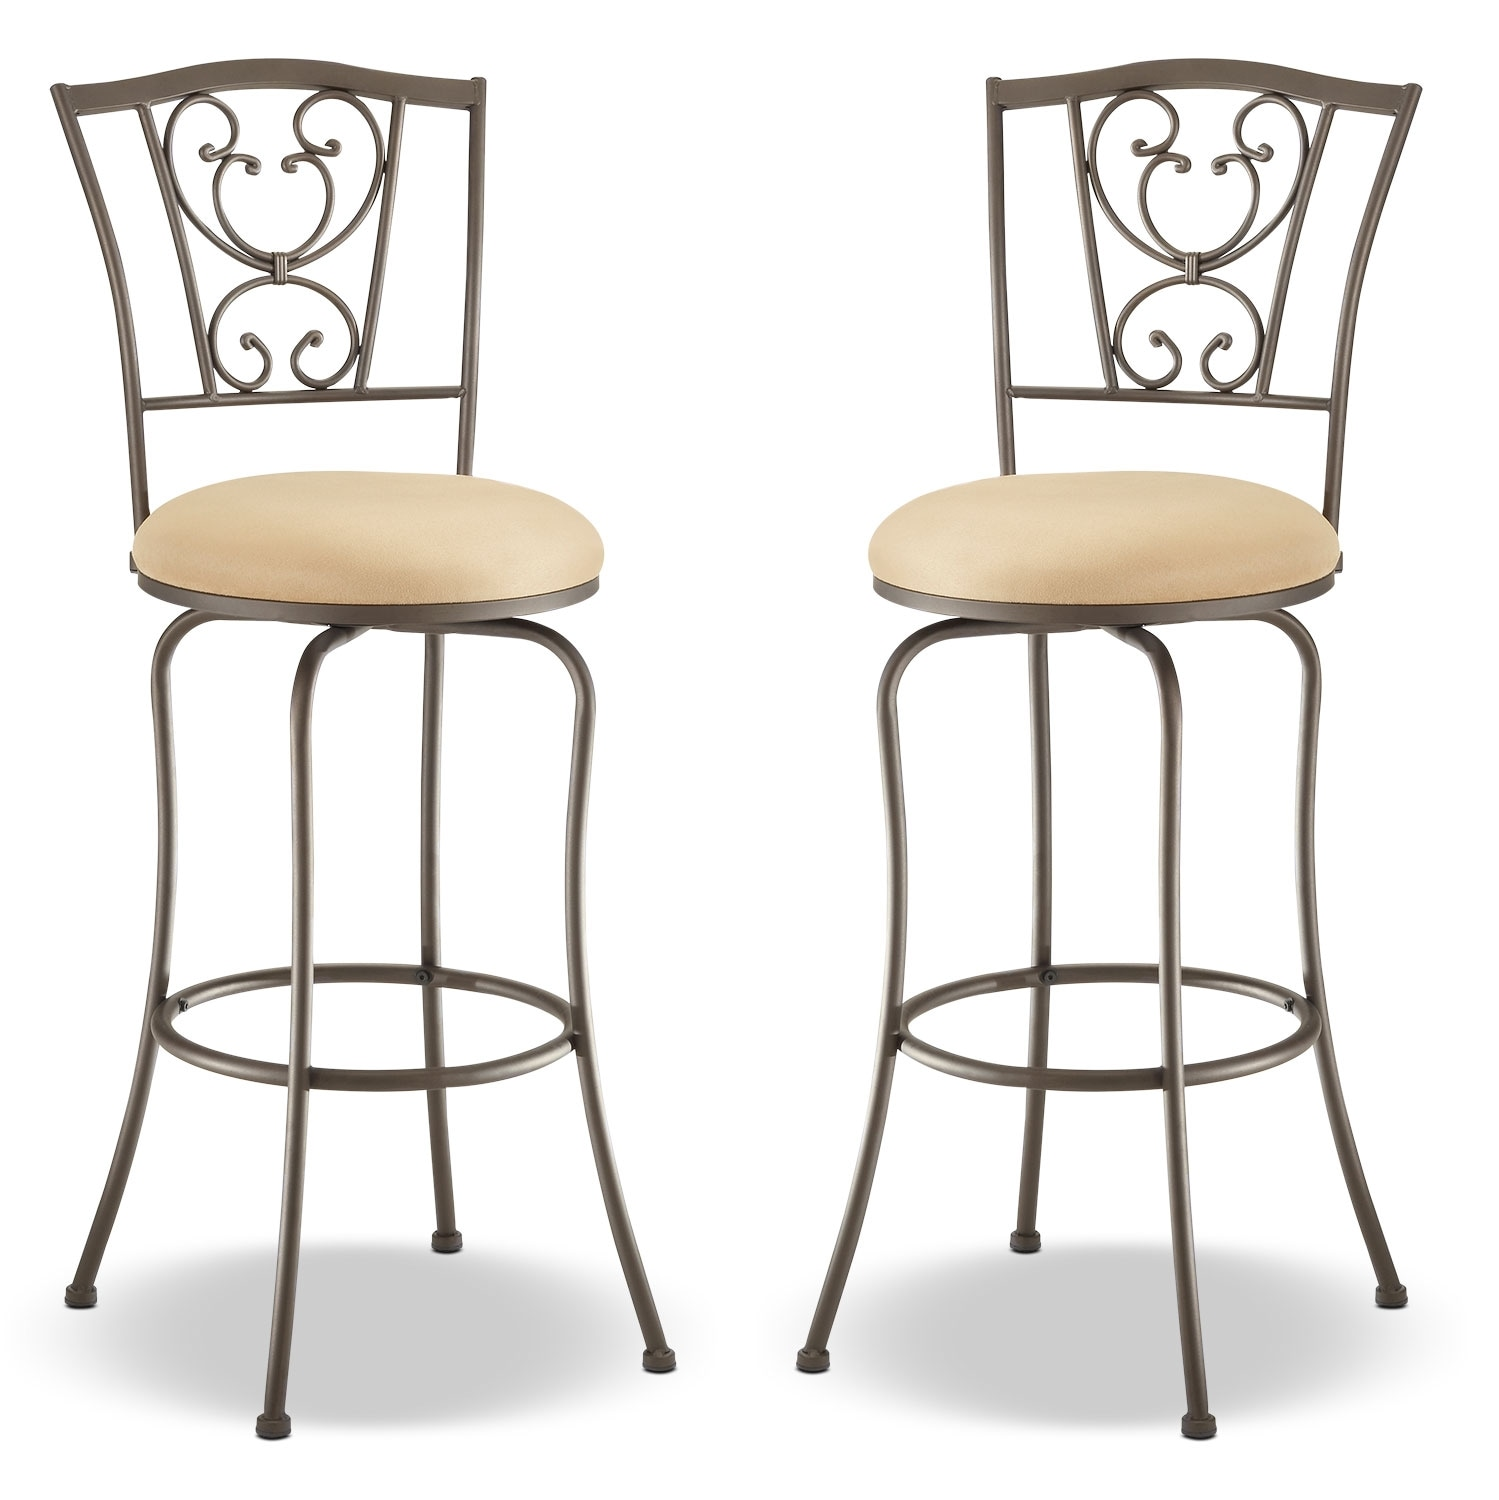 Concord Swivel Barstool – Set of 2